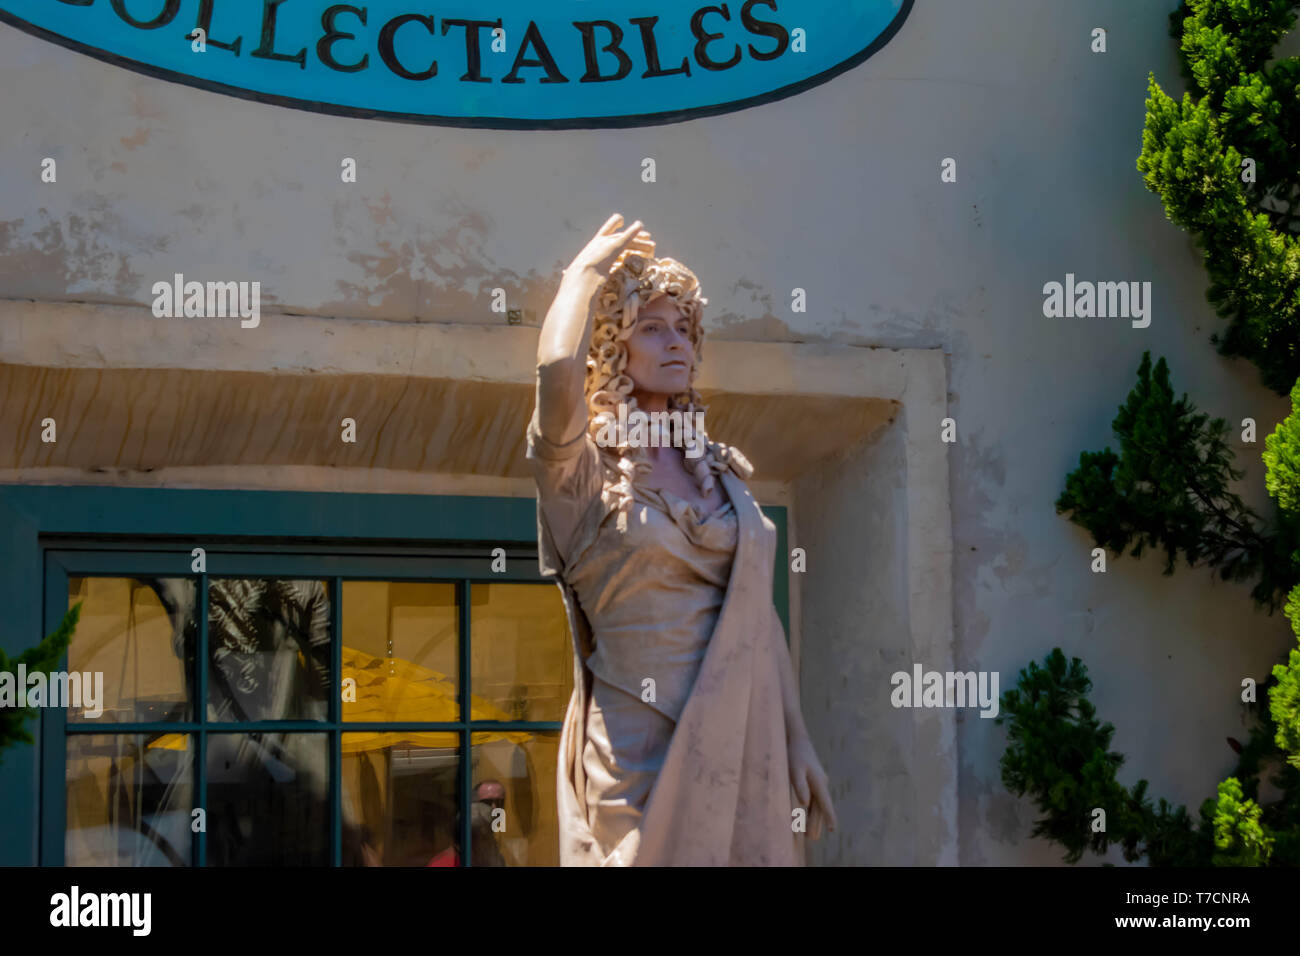 Orlando, Florida. April 20, 2019. Woman living statue throws small jets of water from her hands at Seaworld in International Drive area (4) - Stock Image